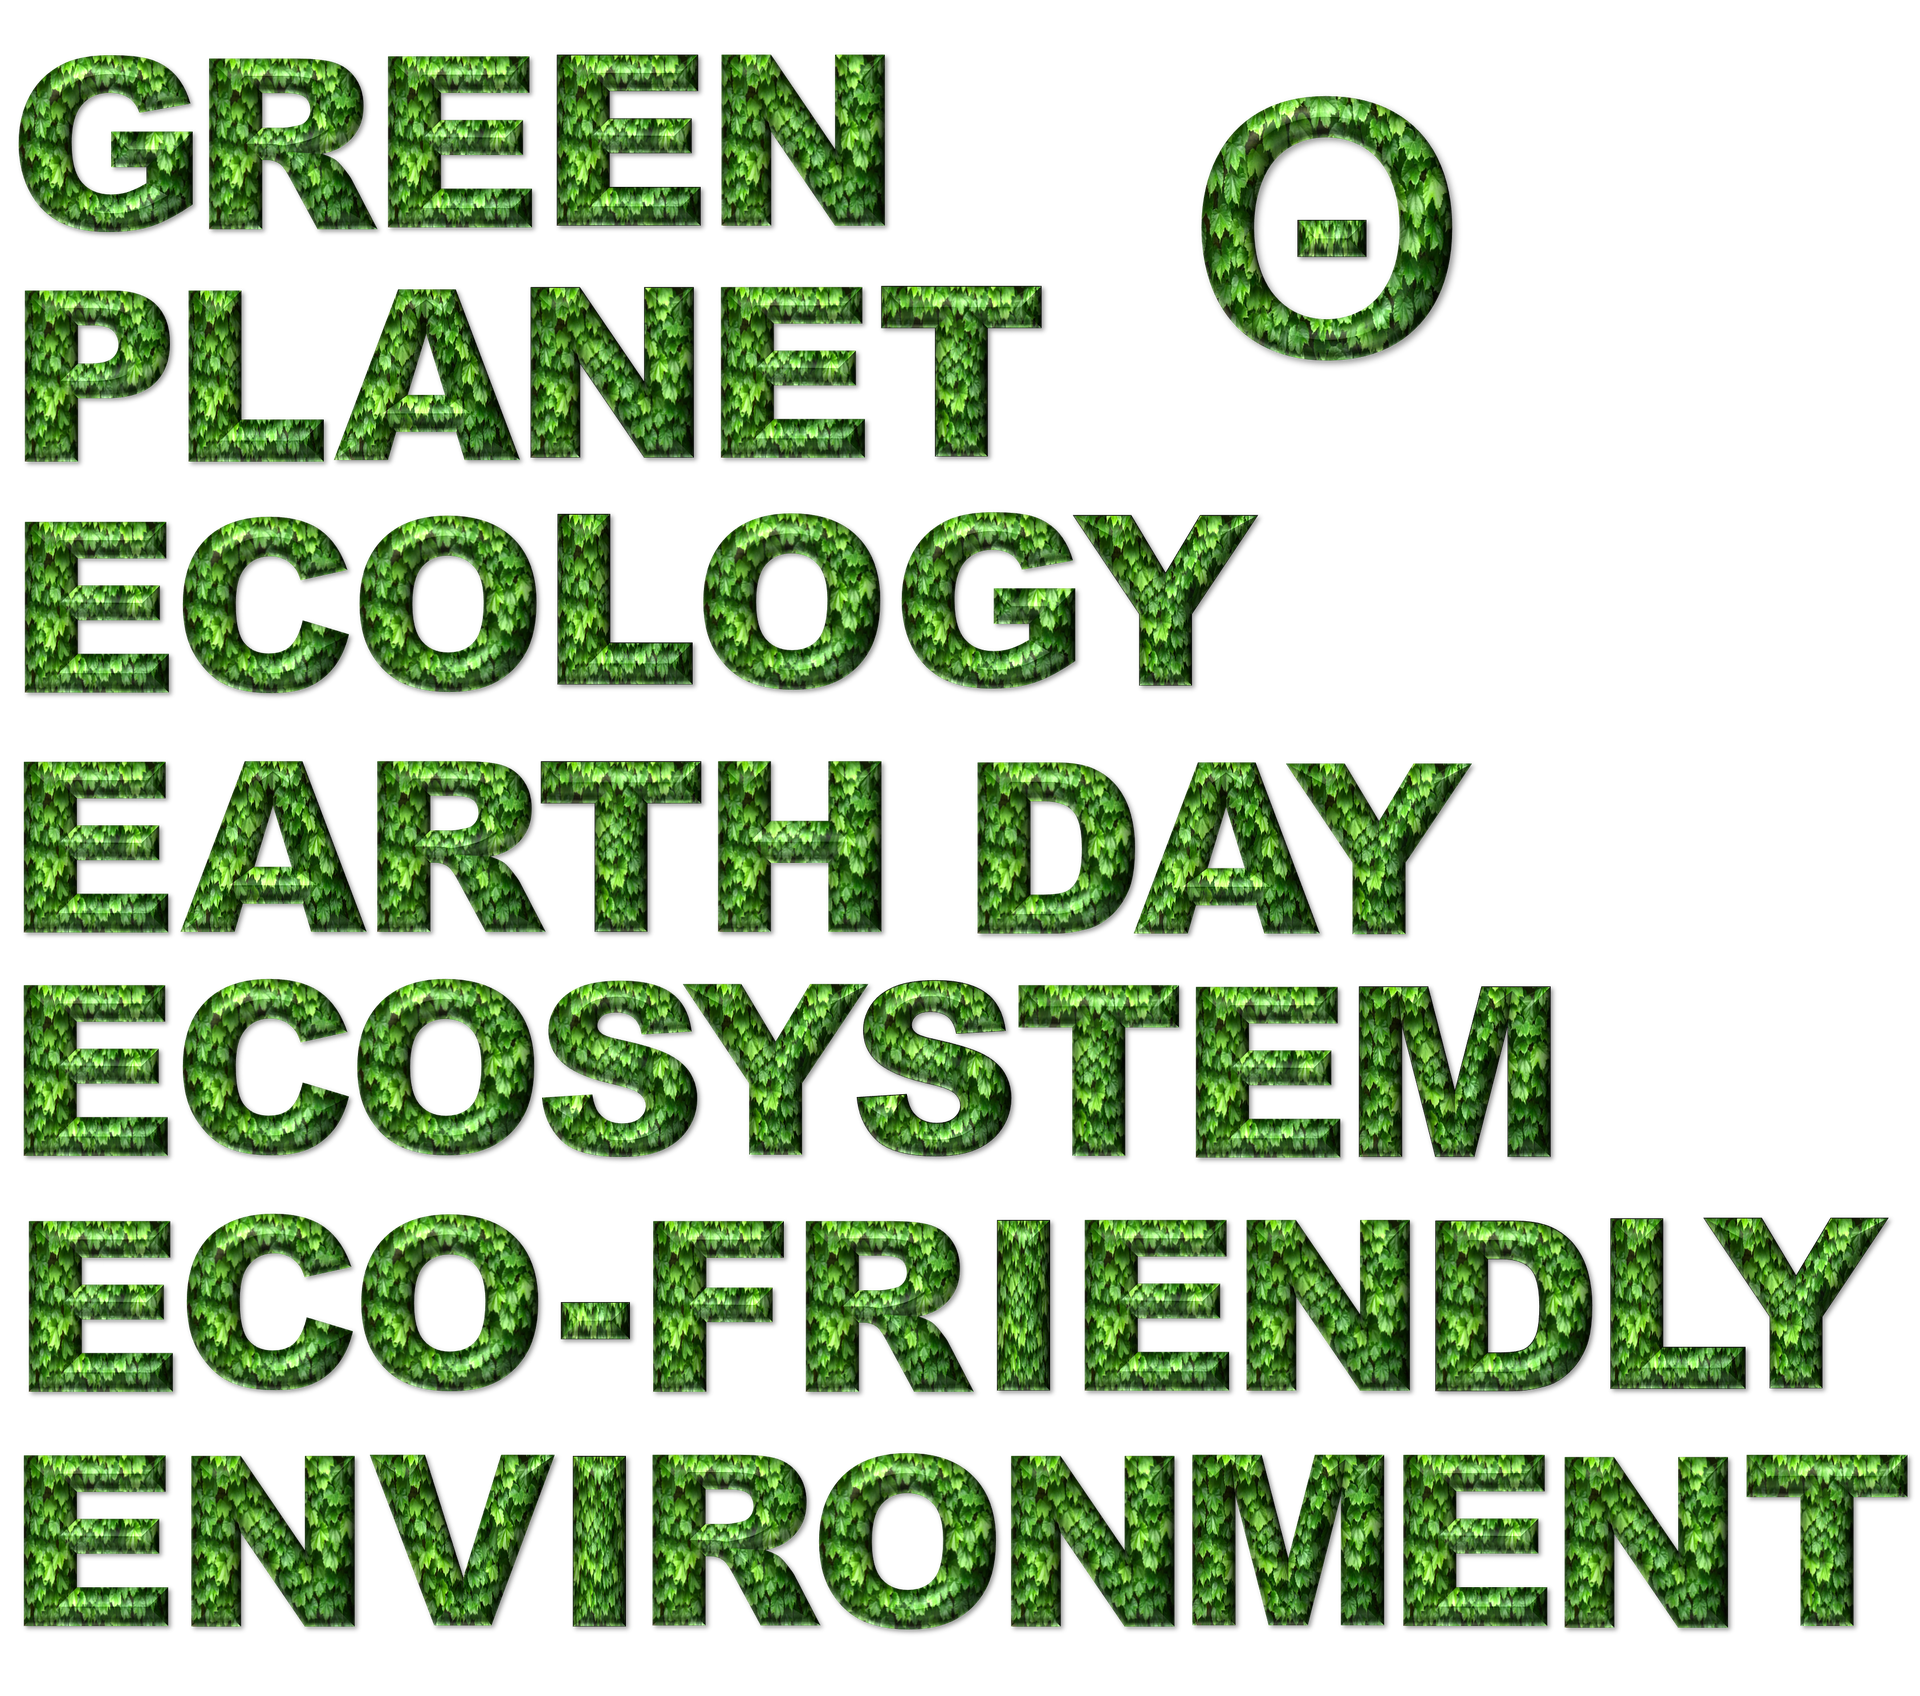 enbironment, earth day, ecology, planting plants, eco-friendly, green